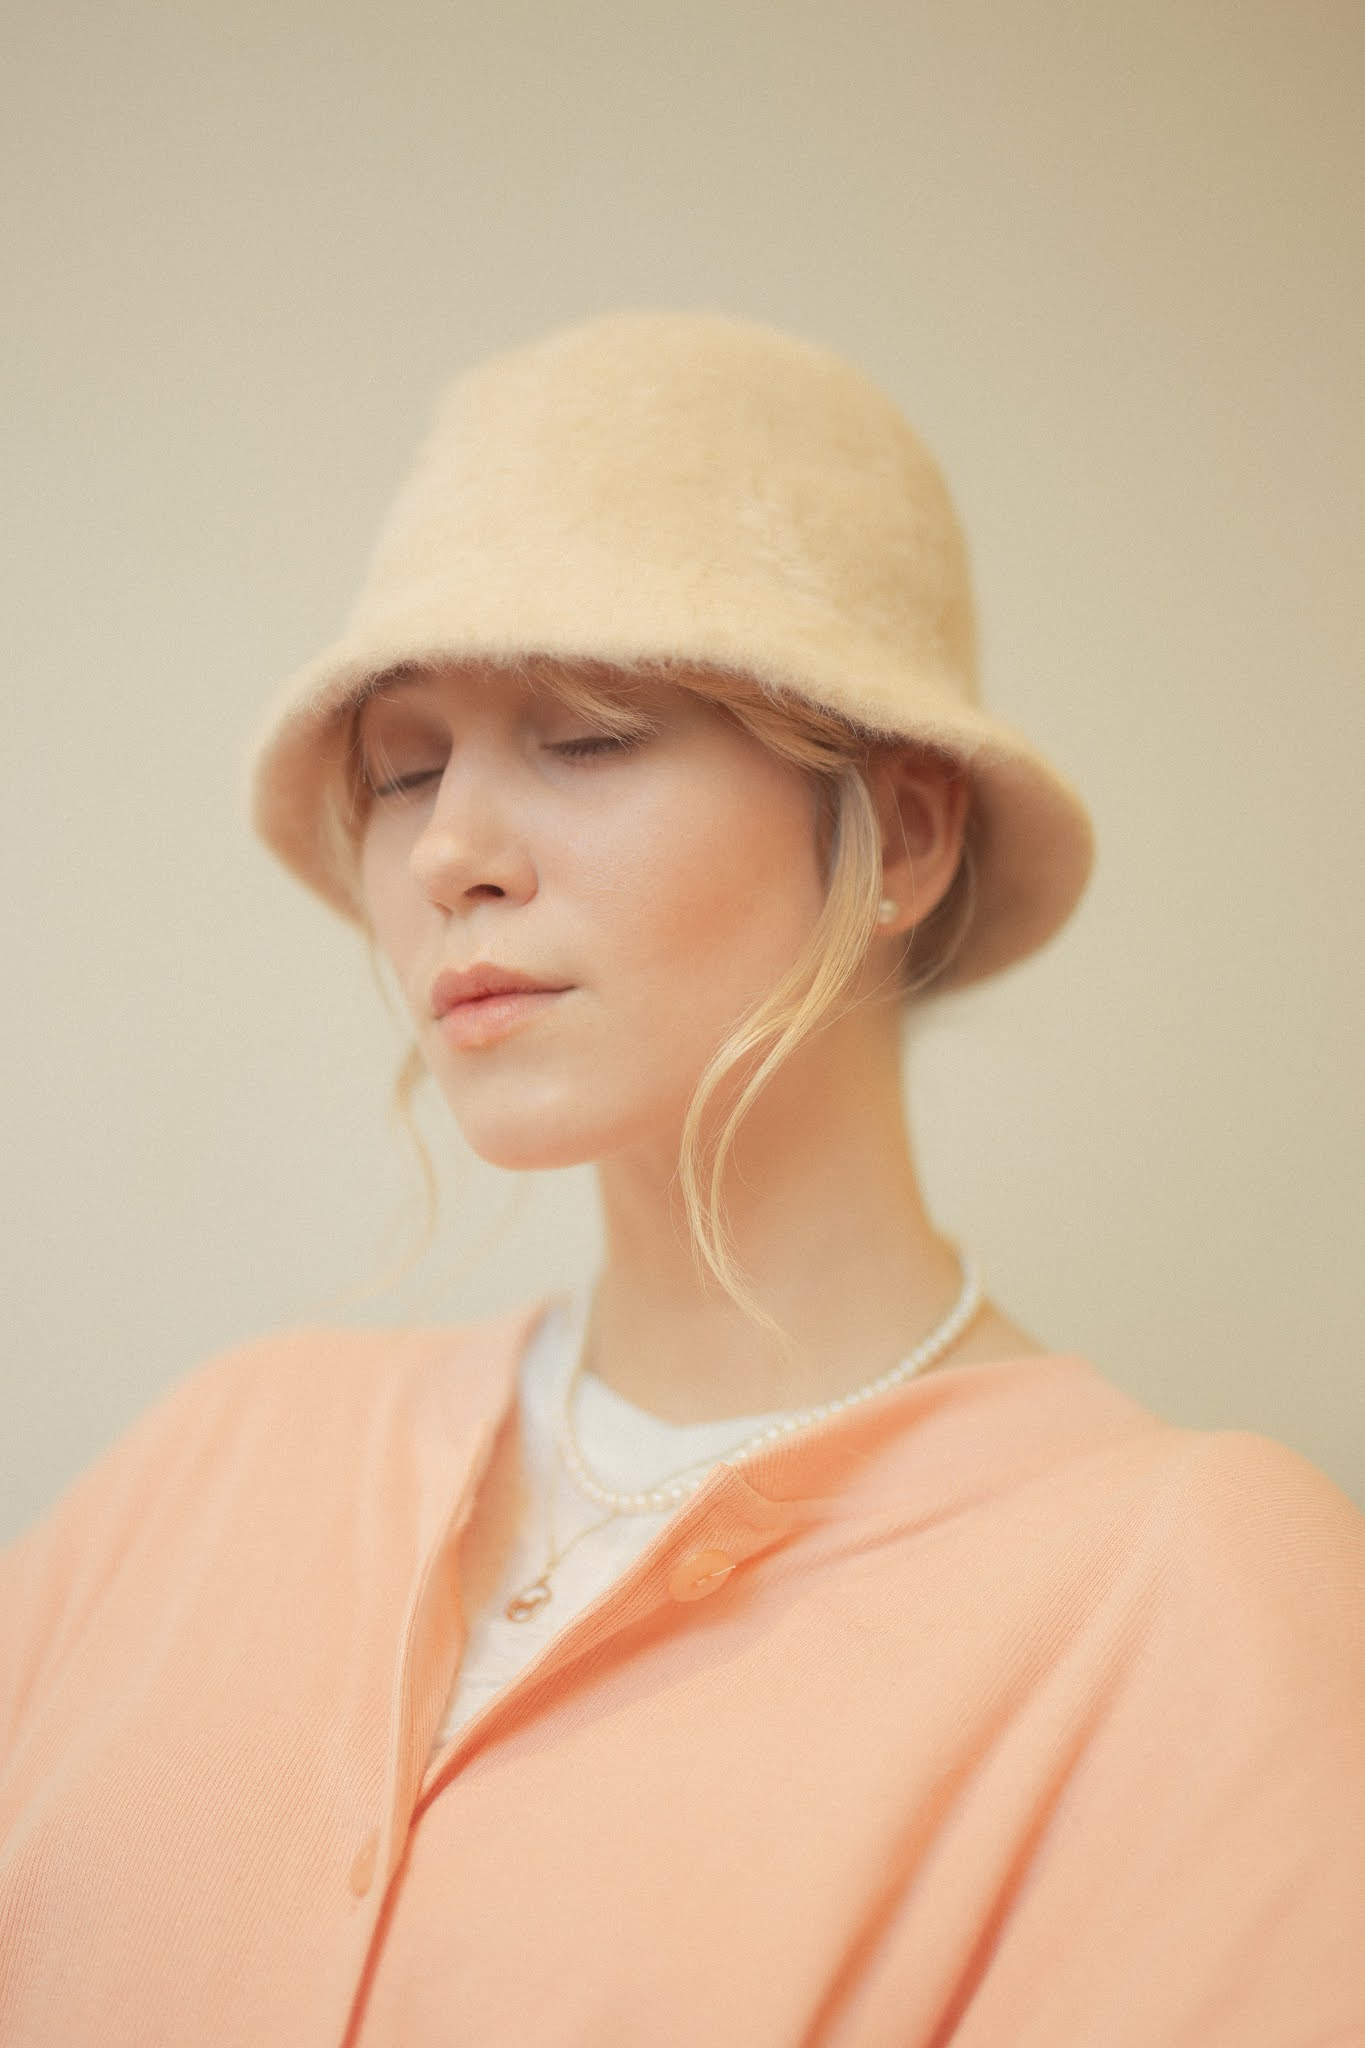 Marie Noreger is a Norwegian musician with a recent single 'Soulfully High'